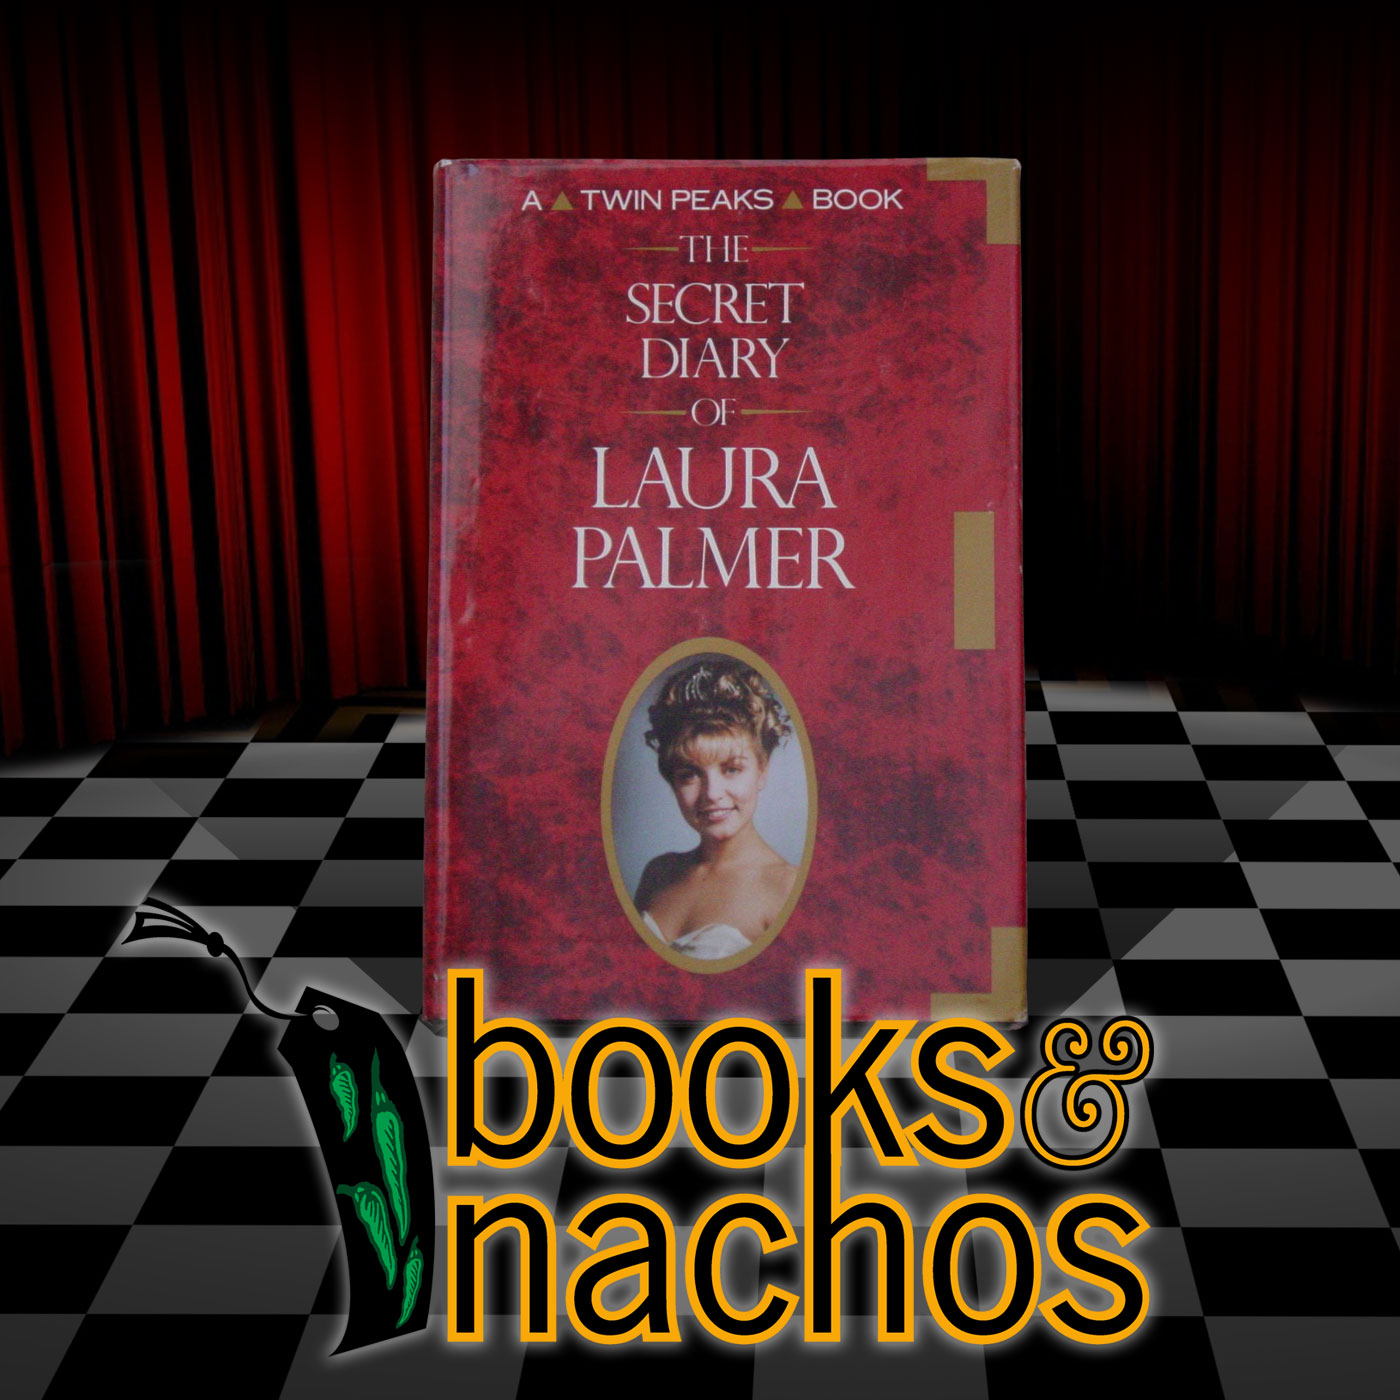 Books & Nachos Review: Twin Peaks: The Secret Diary of Laura Palmer